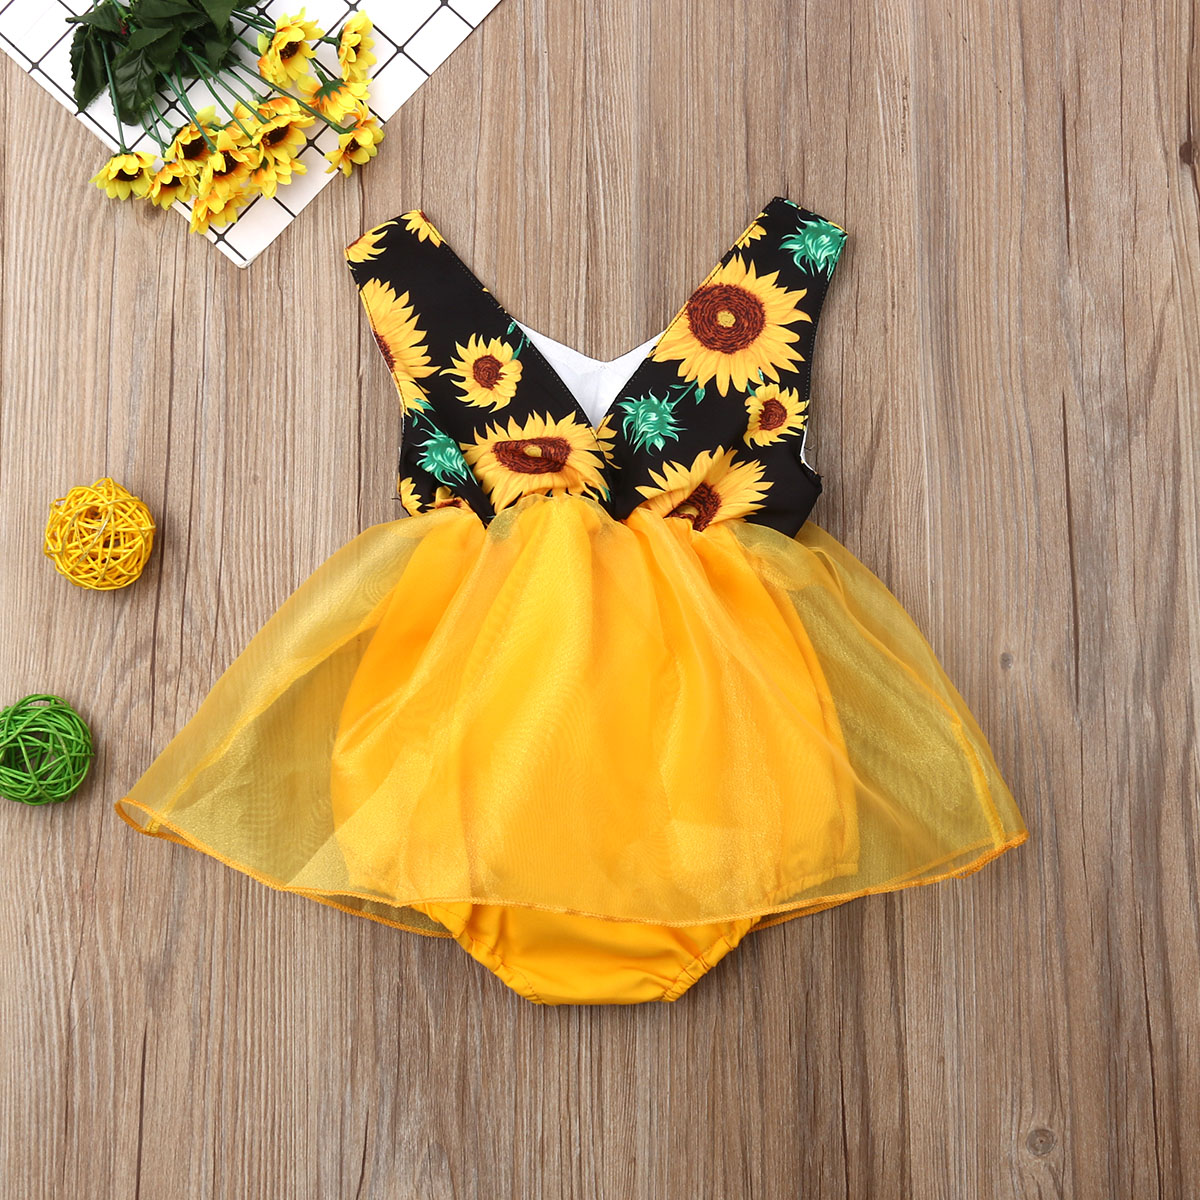 0 18M Baby Girl Rompers Dress Summer Sleeveless V Neck Sunflower Romper Dress Yellow Tulle Tutu Sunsuit Clothes Dress 2019 New in Dresses from Mother Kids